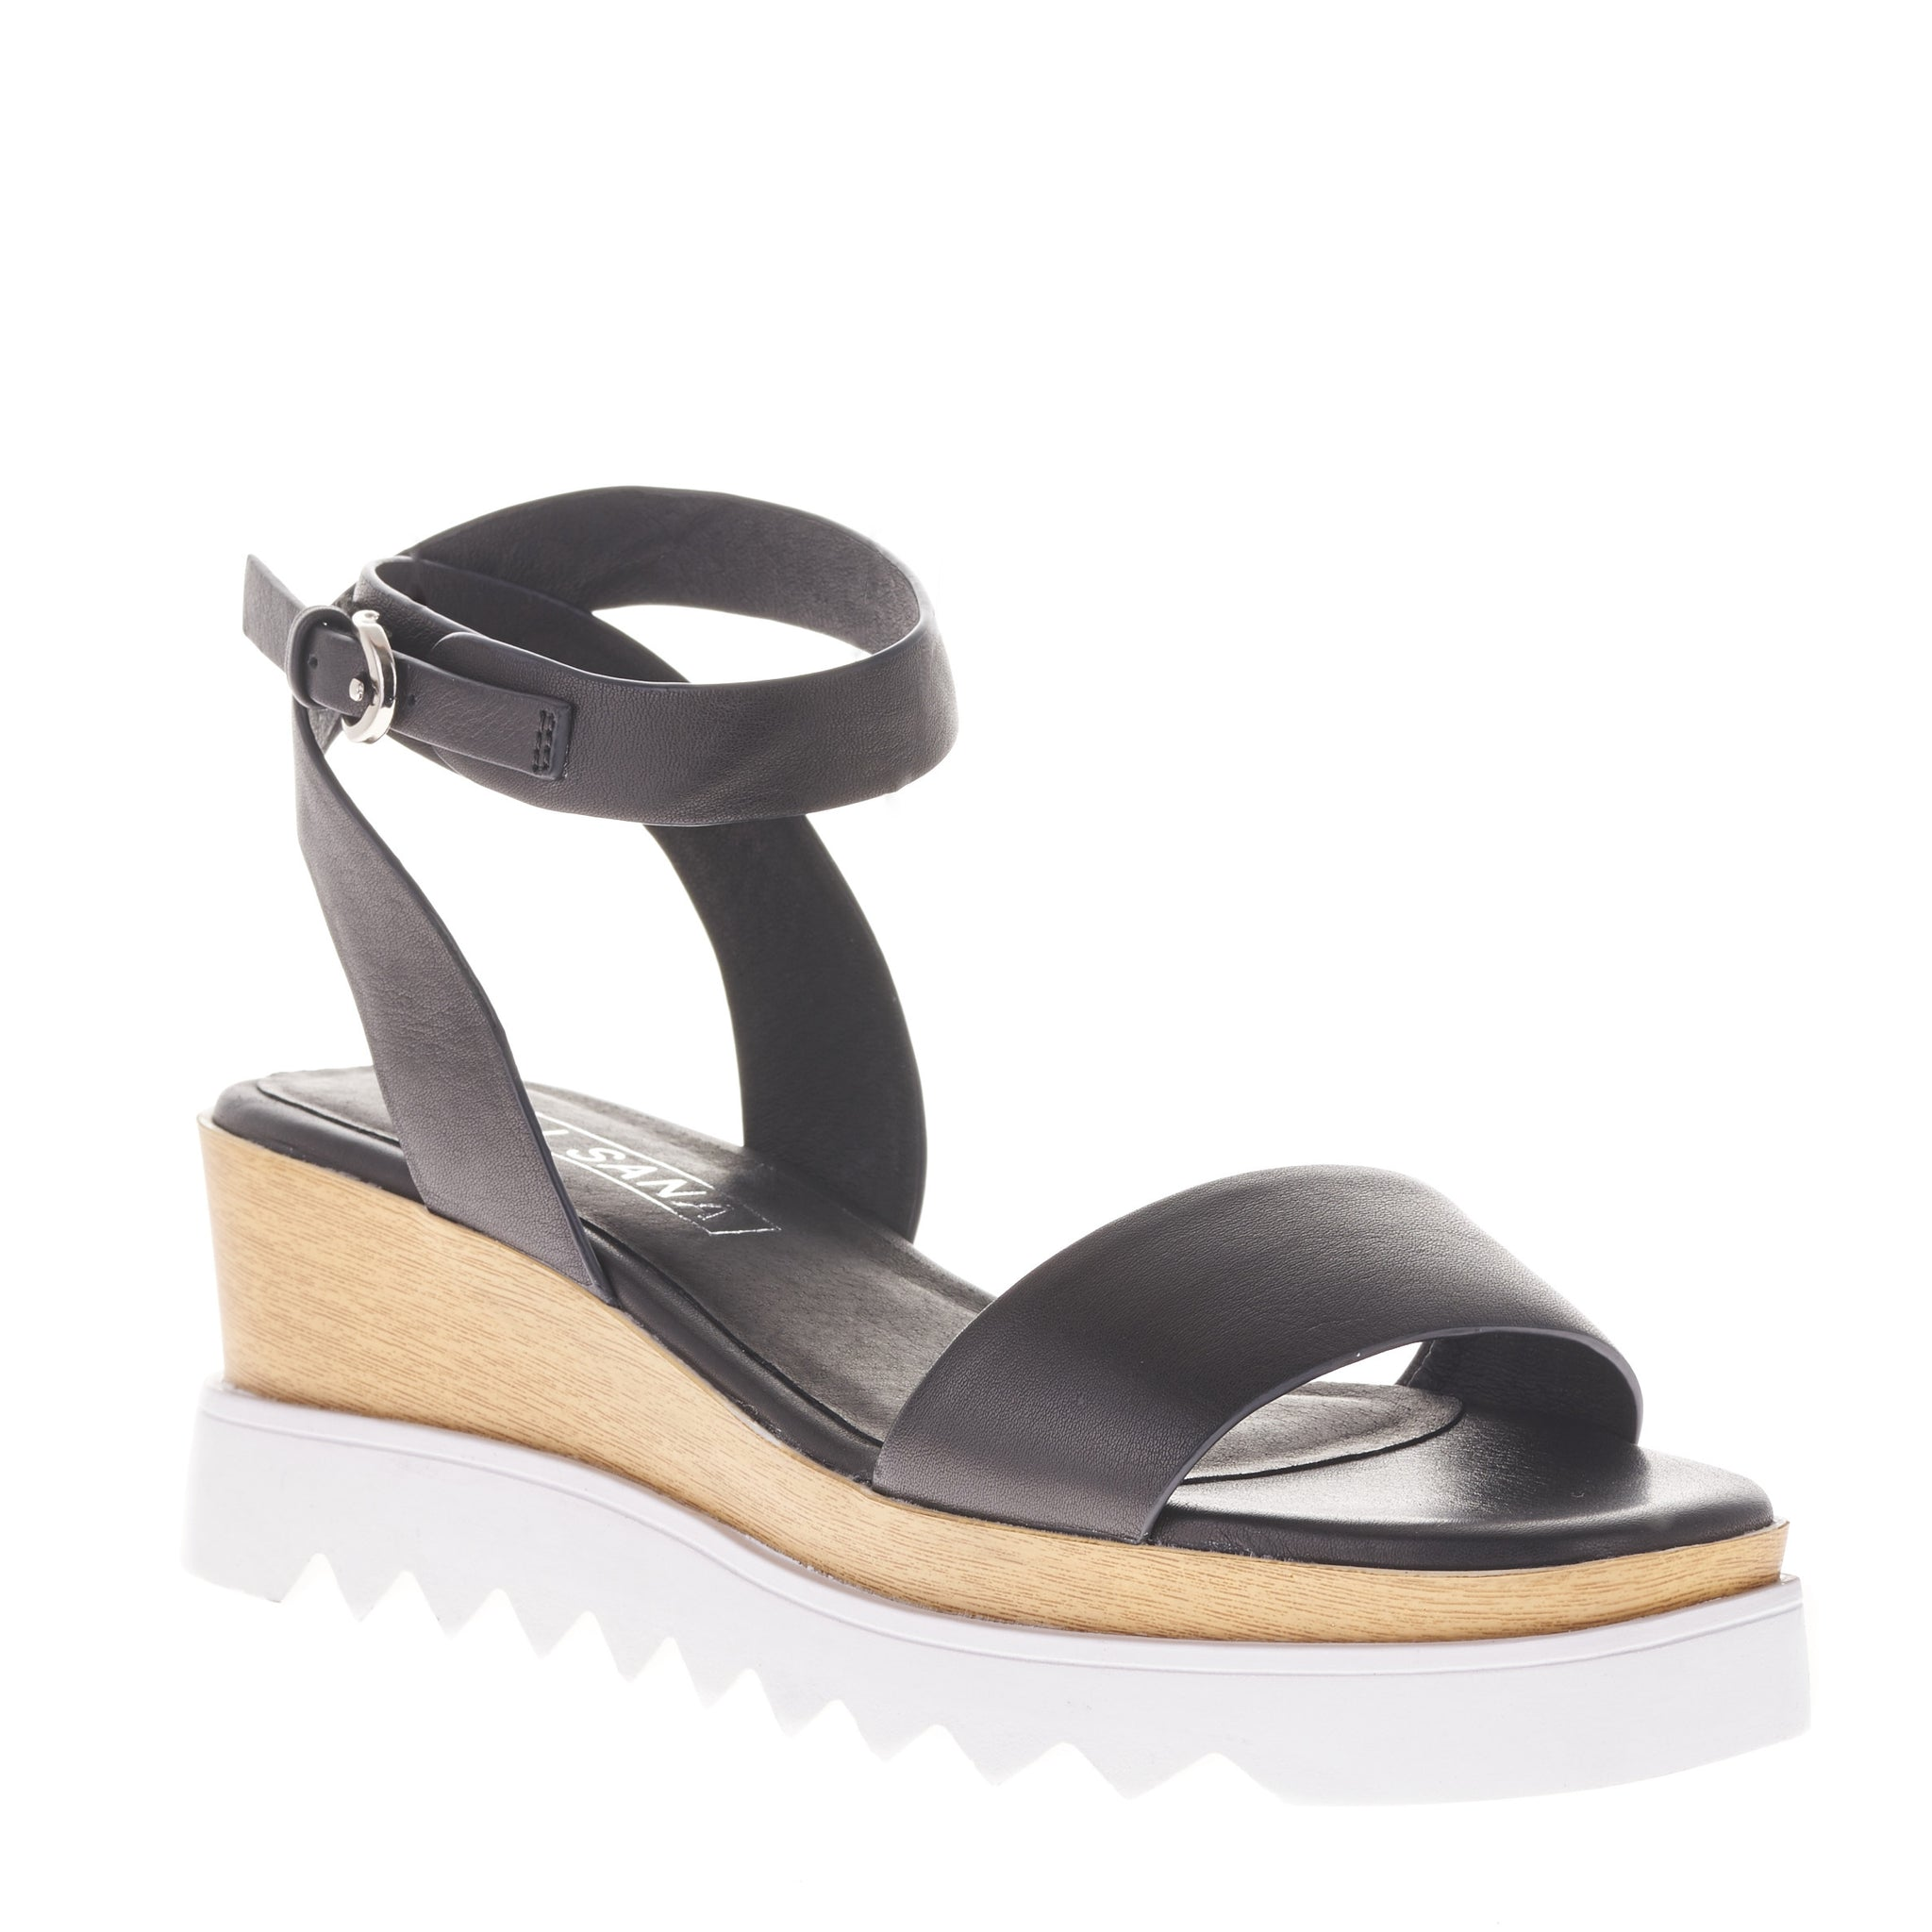 7182c1ce766 Sol Sana Tray flatform wedge in black leather sandals